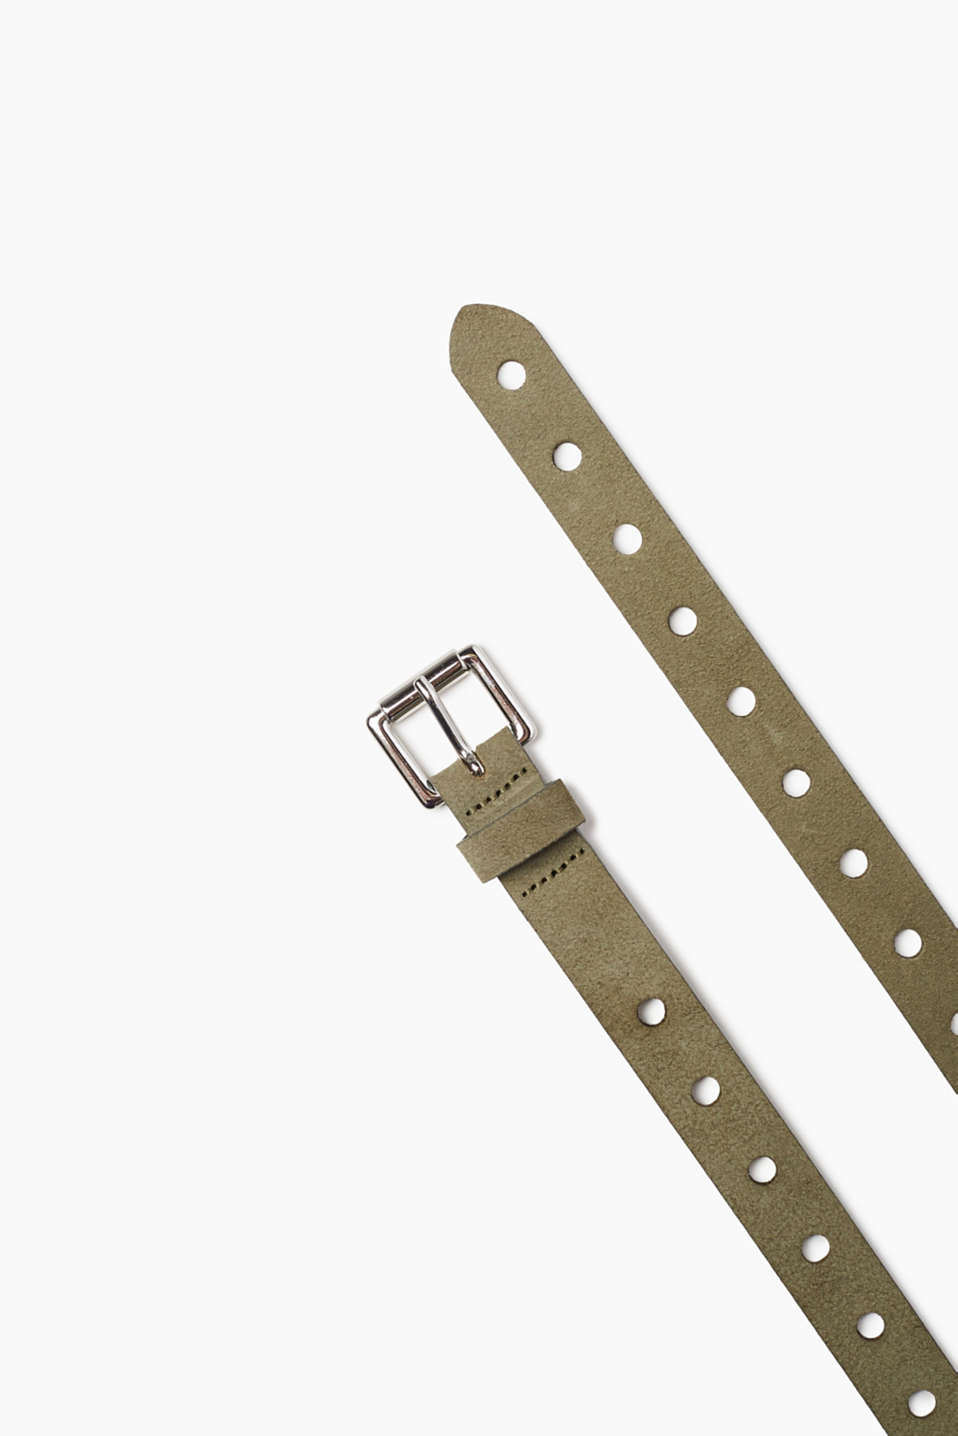 Soft suede belt with holes all over the strap